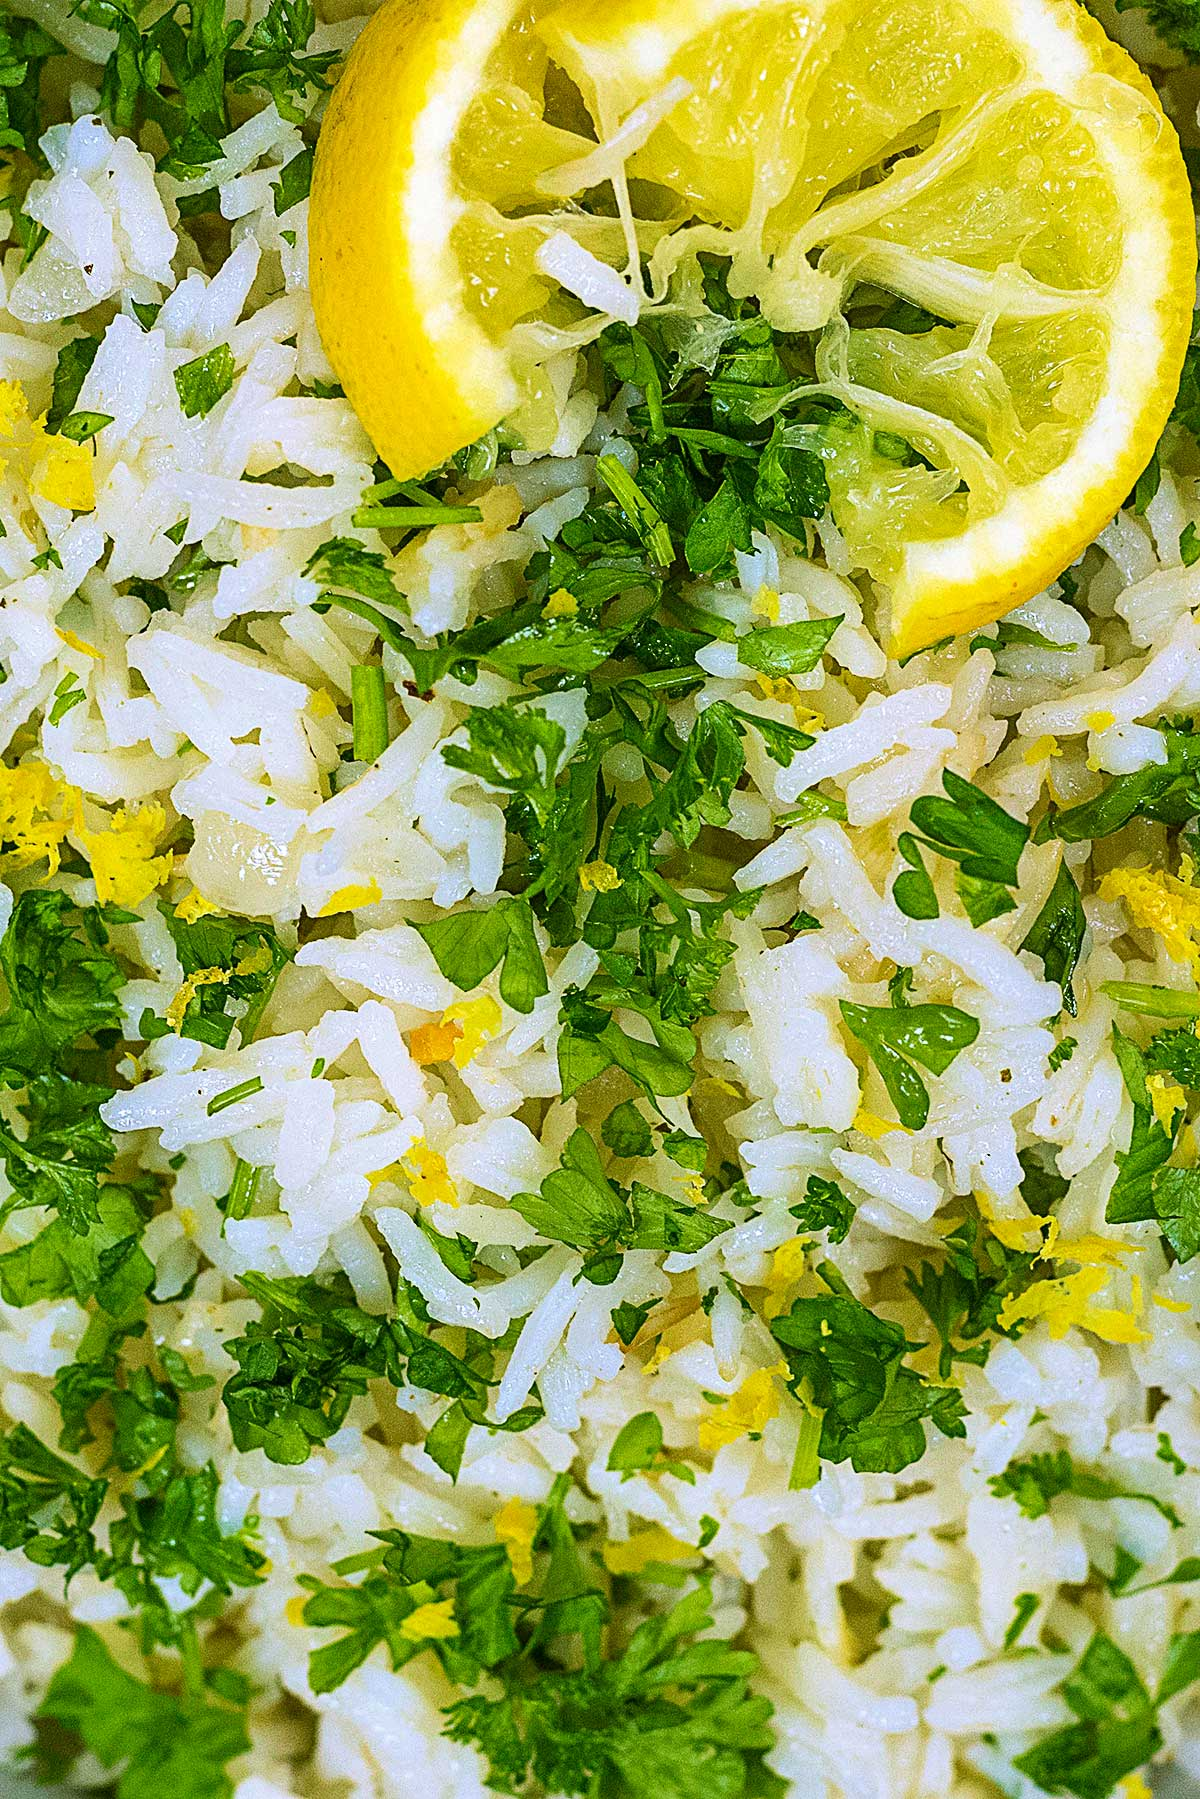 Cooked rice mixed with chopped parsley and lemon zest. A lemon slice is on top.